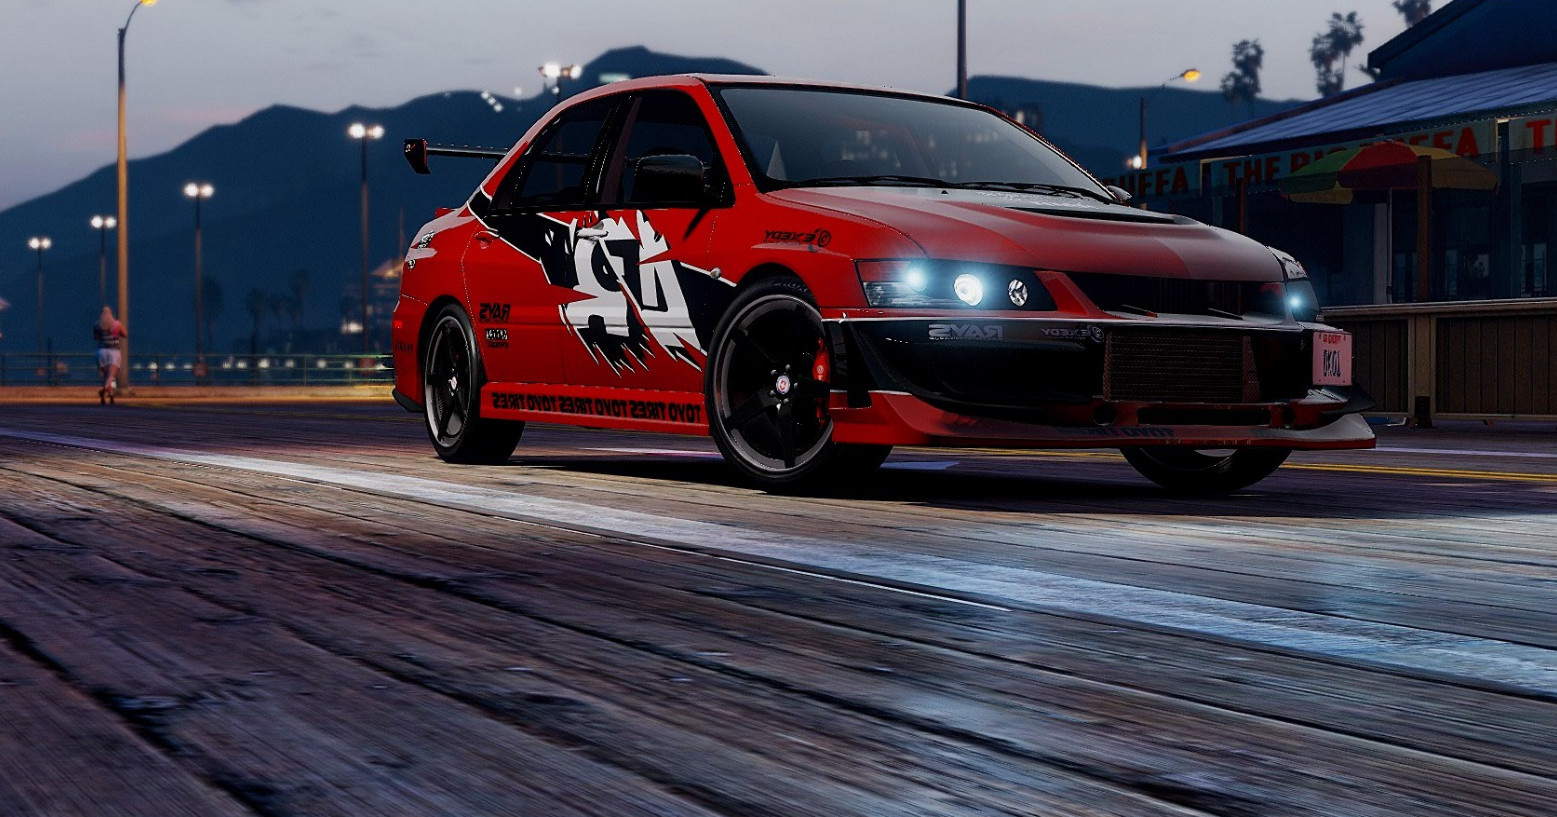 mitsubishi lancer evolution the fast and the furious tokyo drift gta5. Black Bedroom Furniture Sets. Home Design Ideas